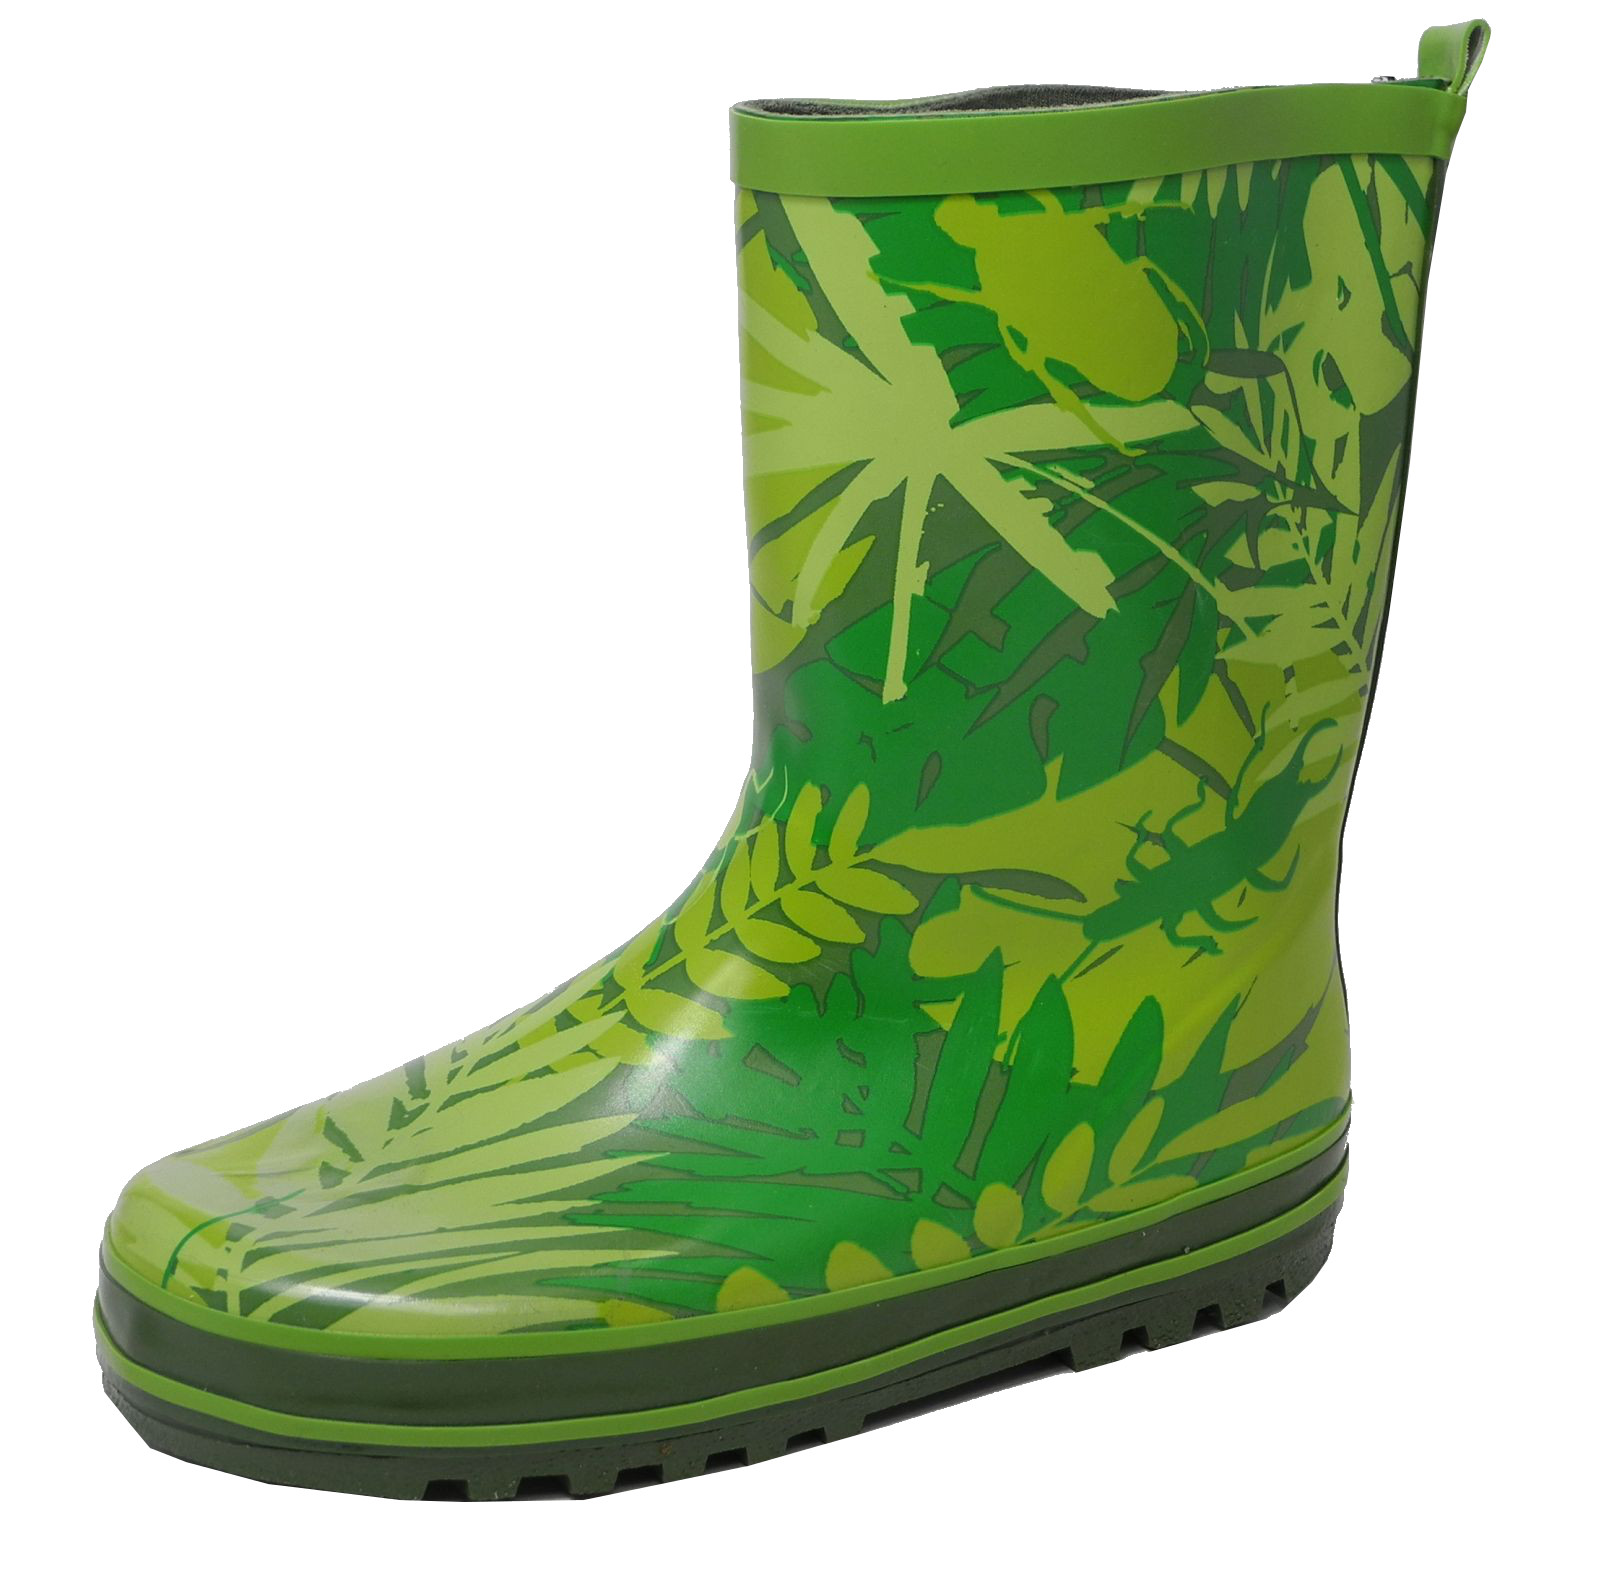 View our latest boys' wellies & boots today. Whatever the weather, we've amazing style to suit all wardrobes. Shop the range online at topinsurances.ga